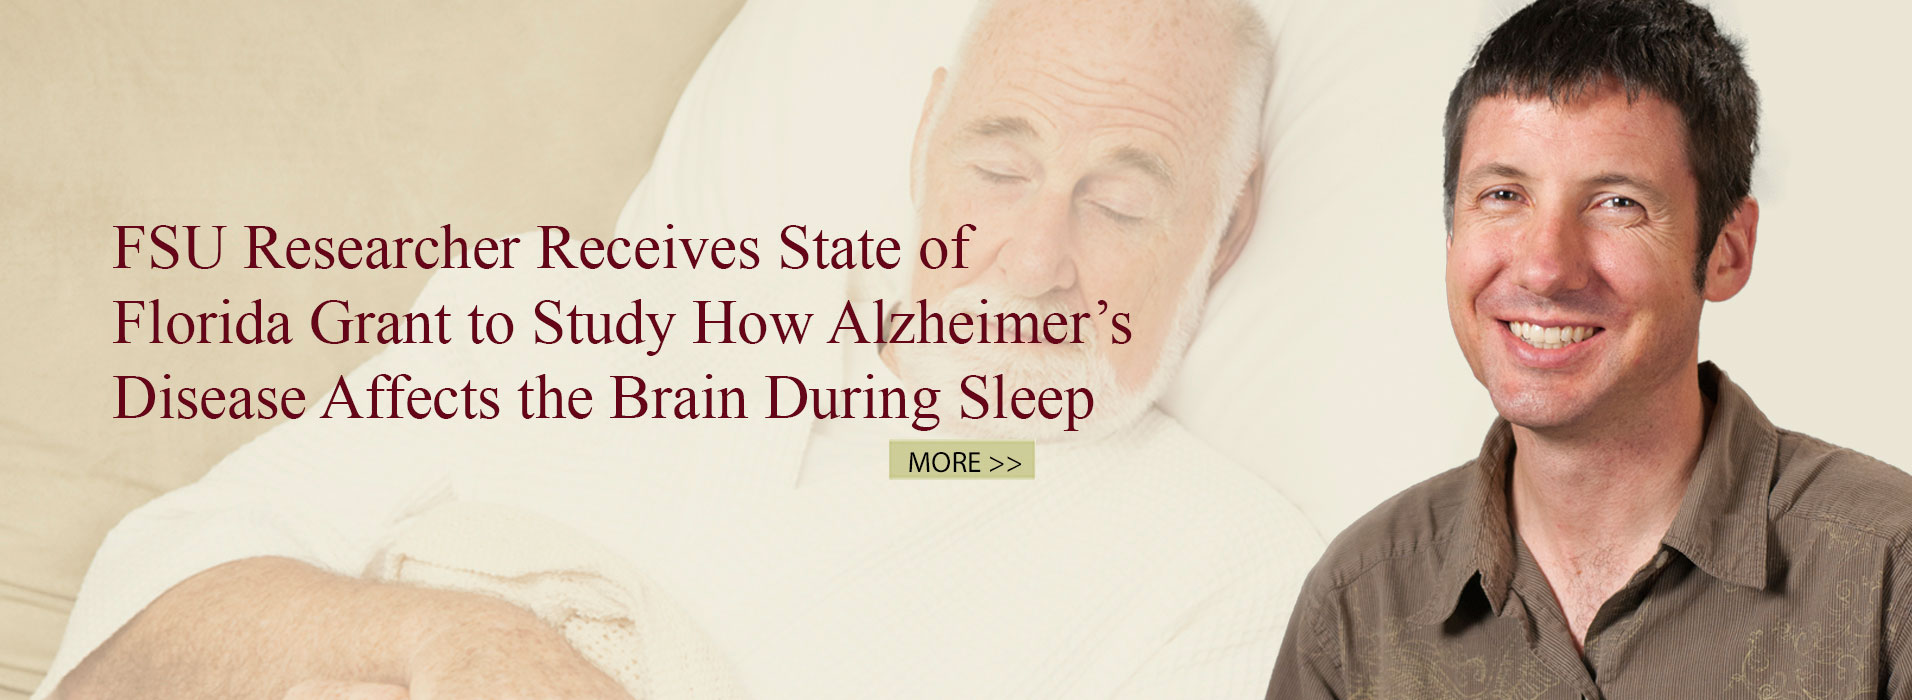 FSU Researcher Receives State of Florida Grant to Study How Alzheimer's Disease Affects the Brain During Sleep